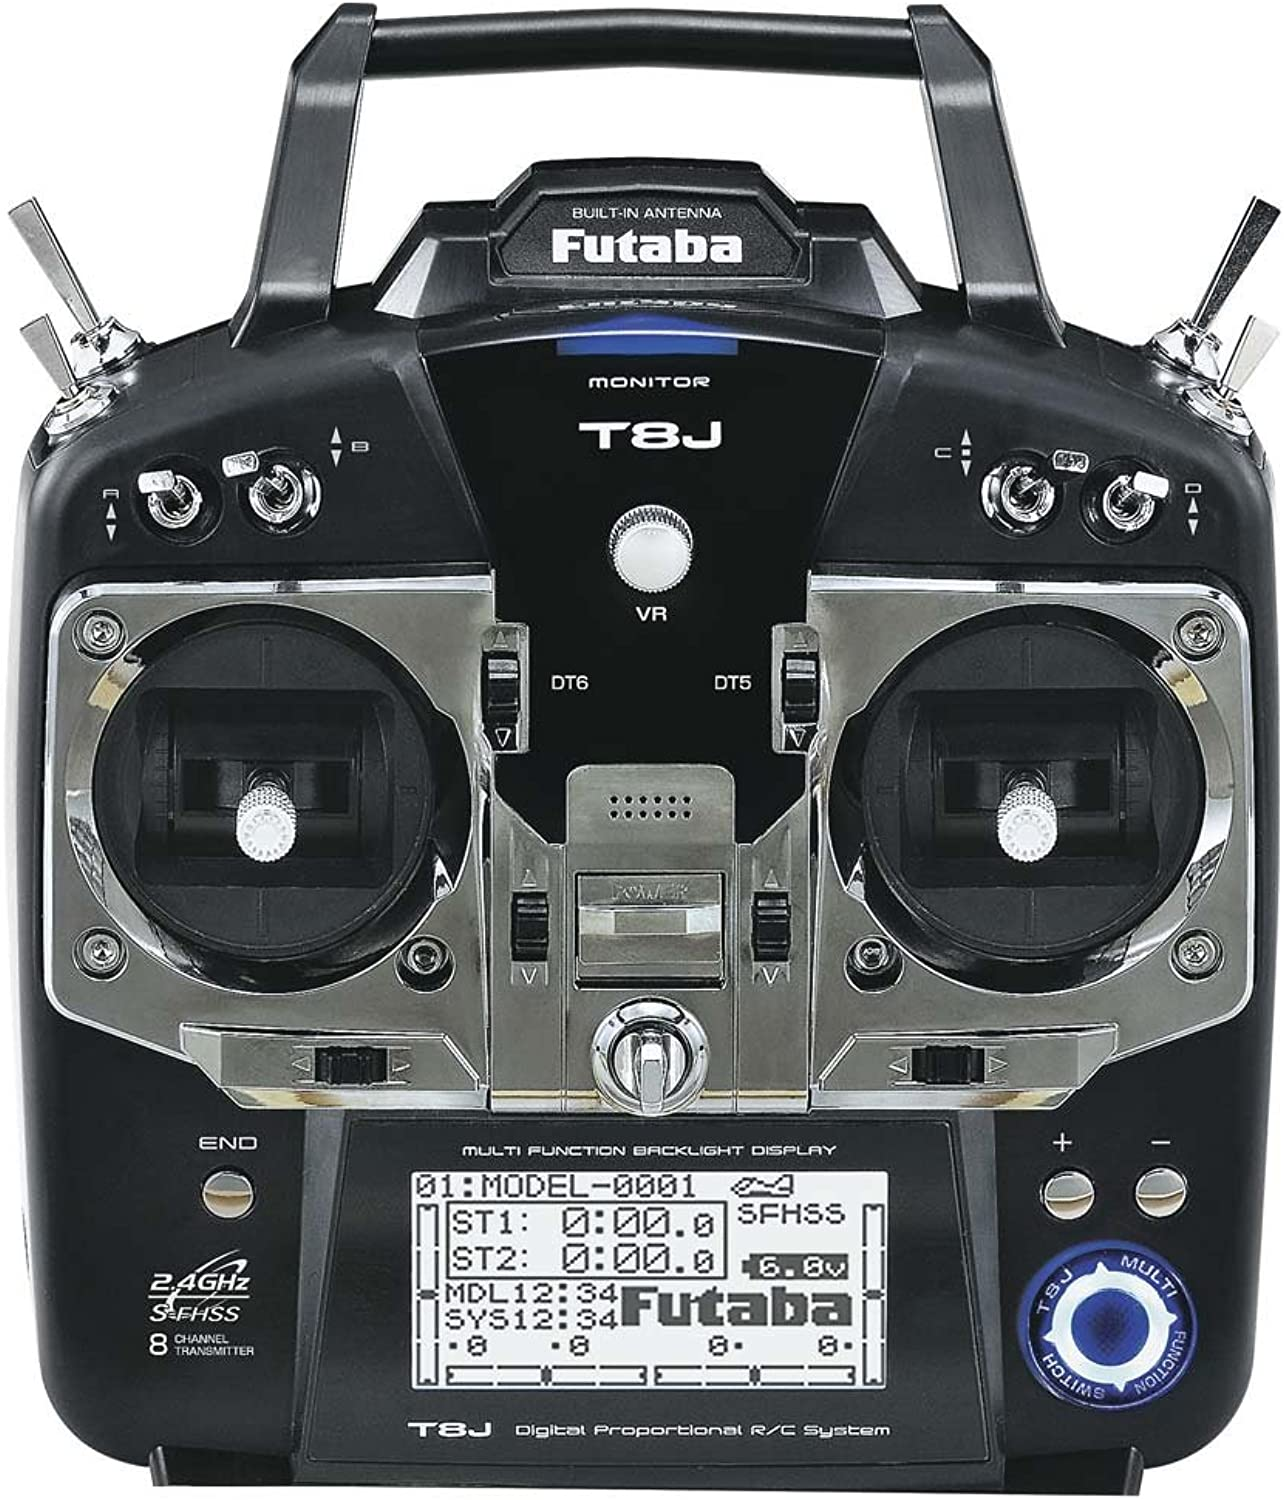 Futaba 8JA 2.4GHZ S FHSS with R2008SB M2 Transmitter